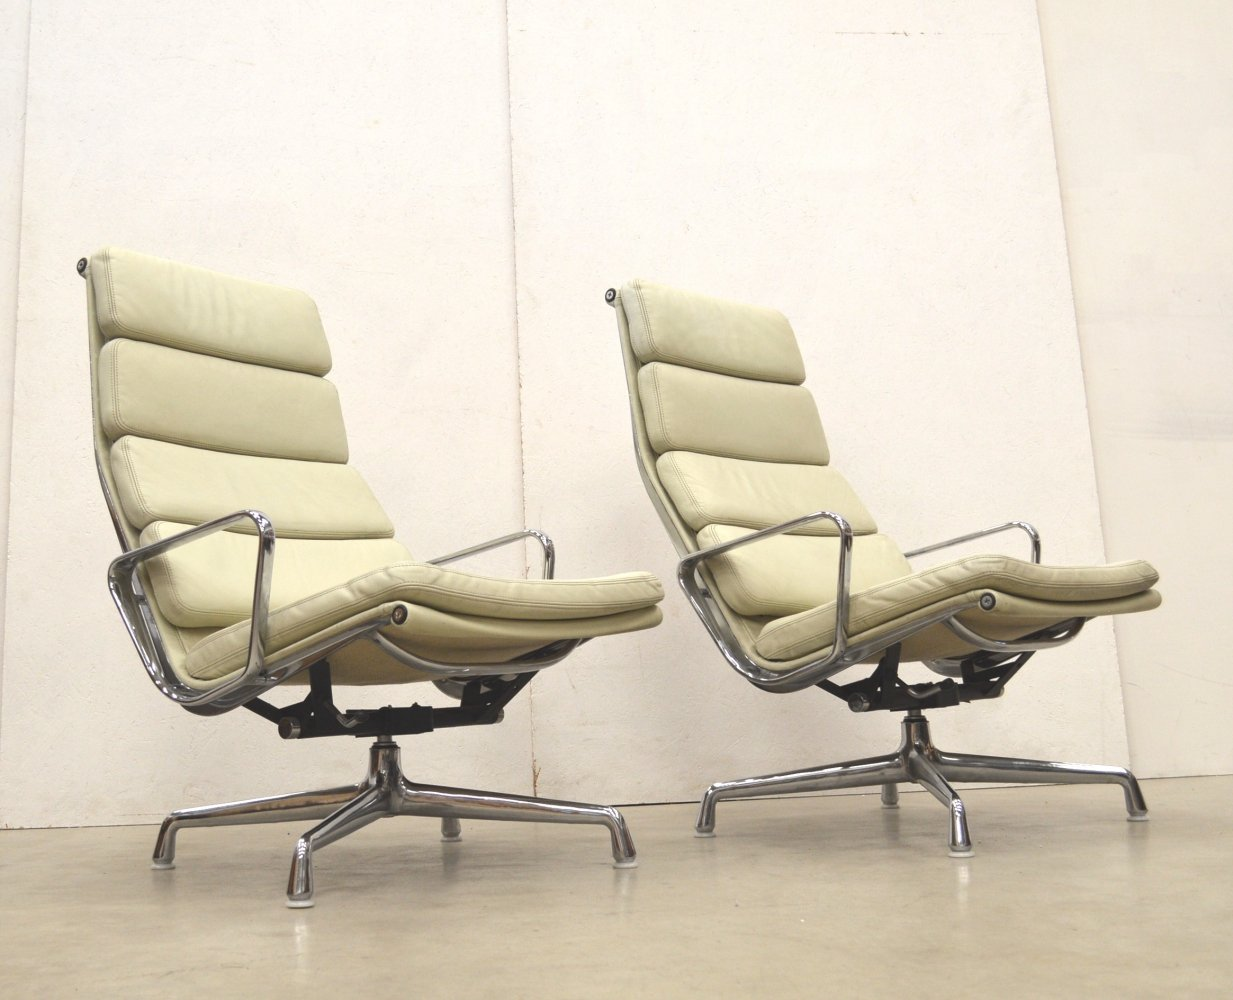 Pair of EA222 Soft Pad lounge chairs by Charles & Ray Eames for Herman Miller, 1990s